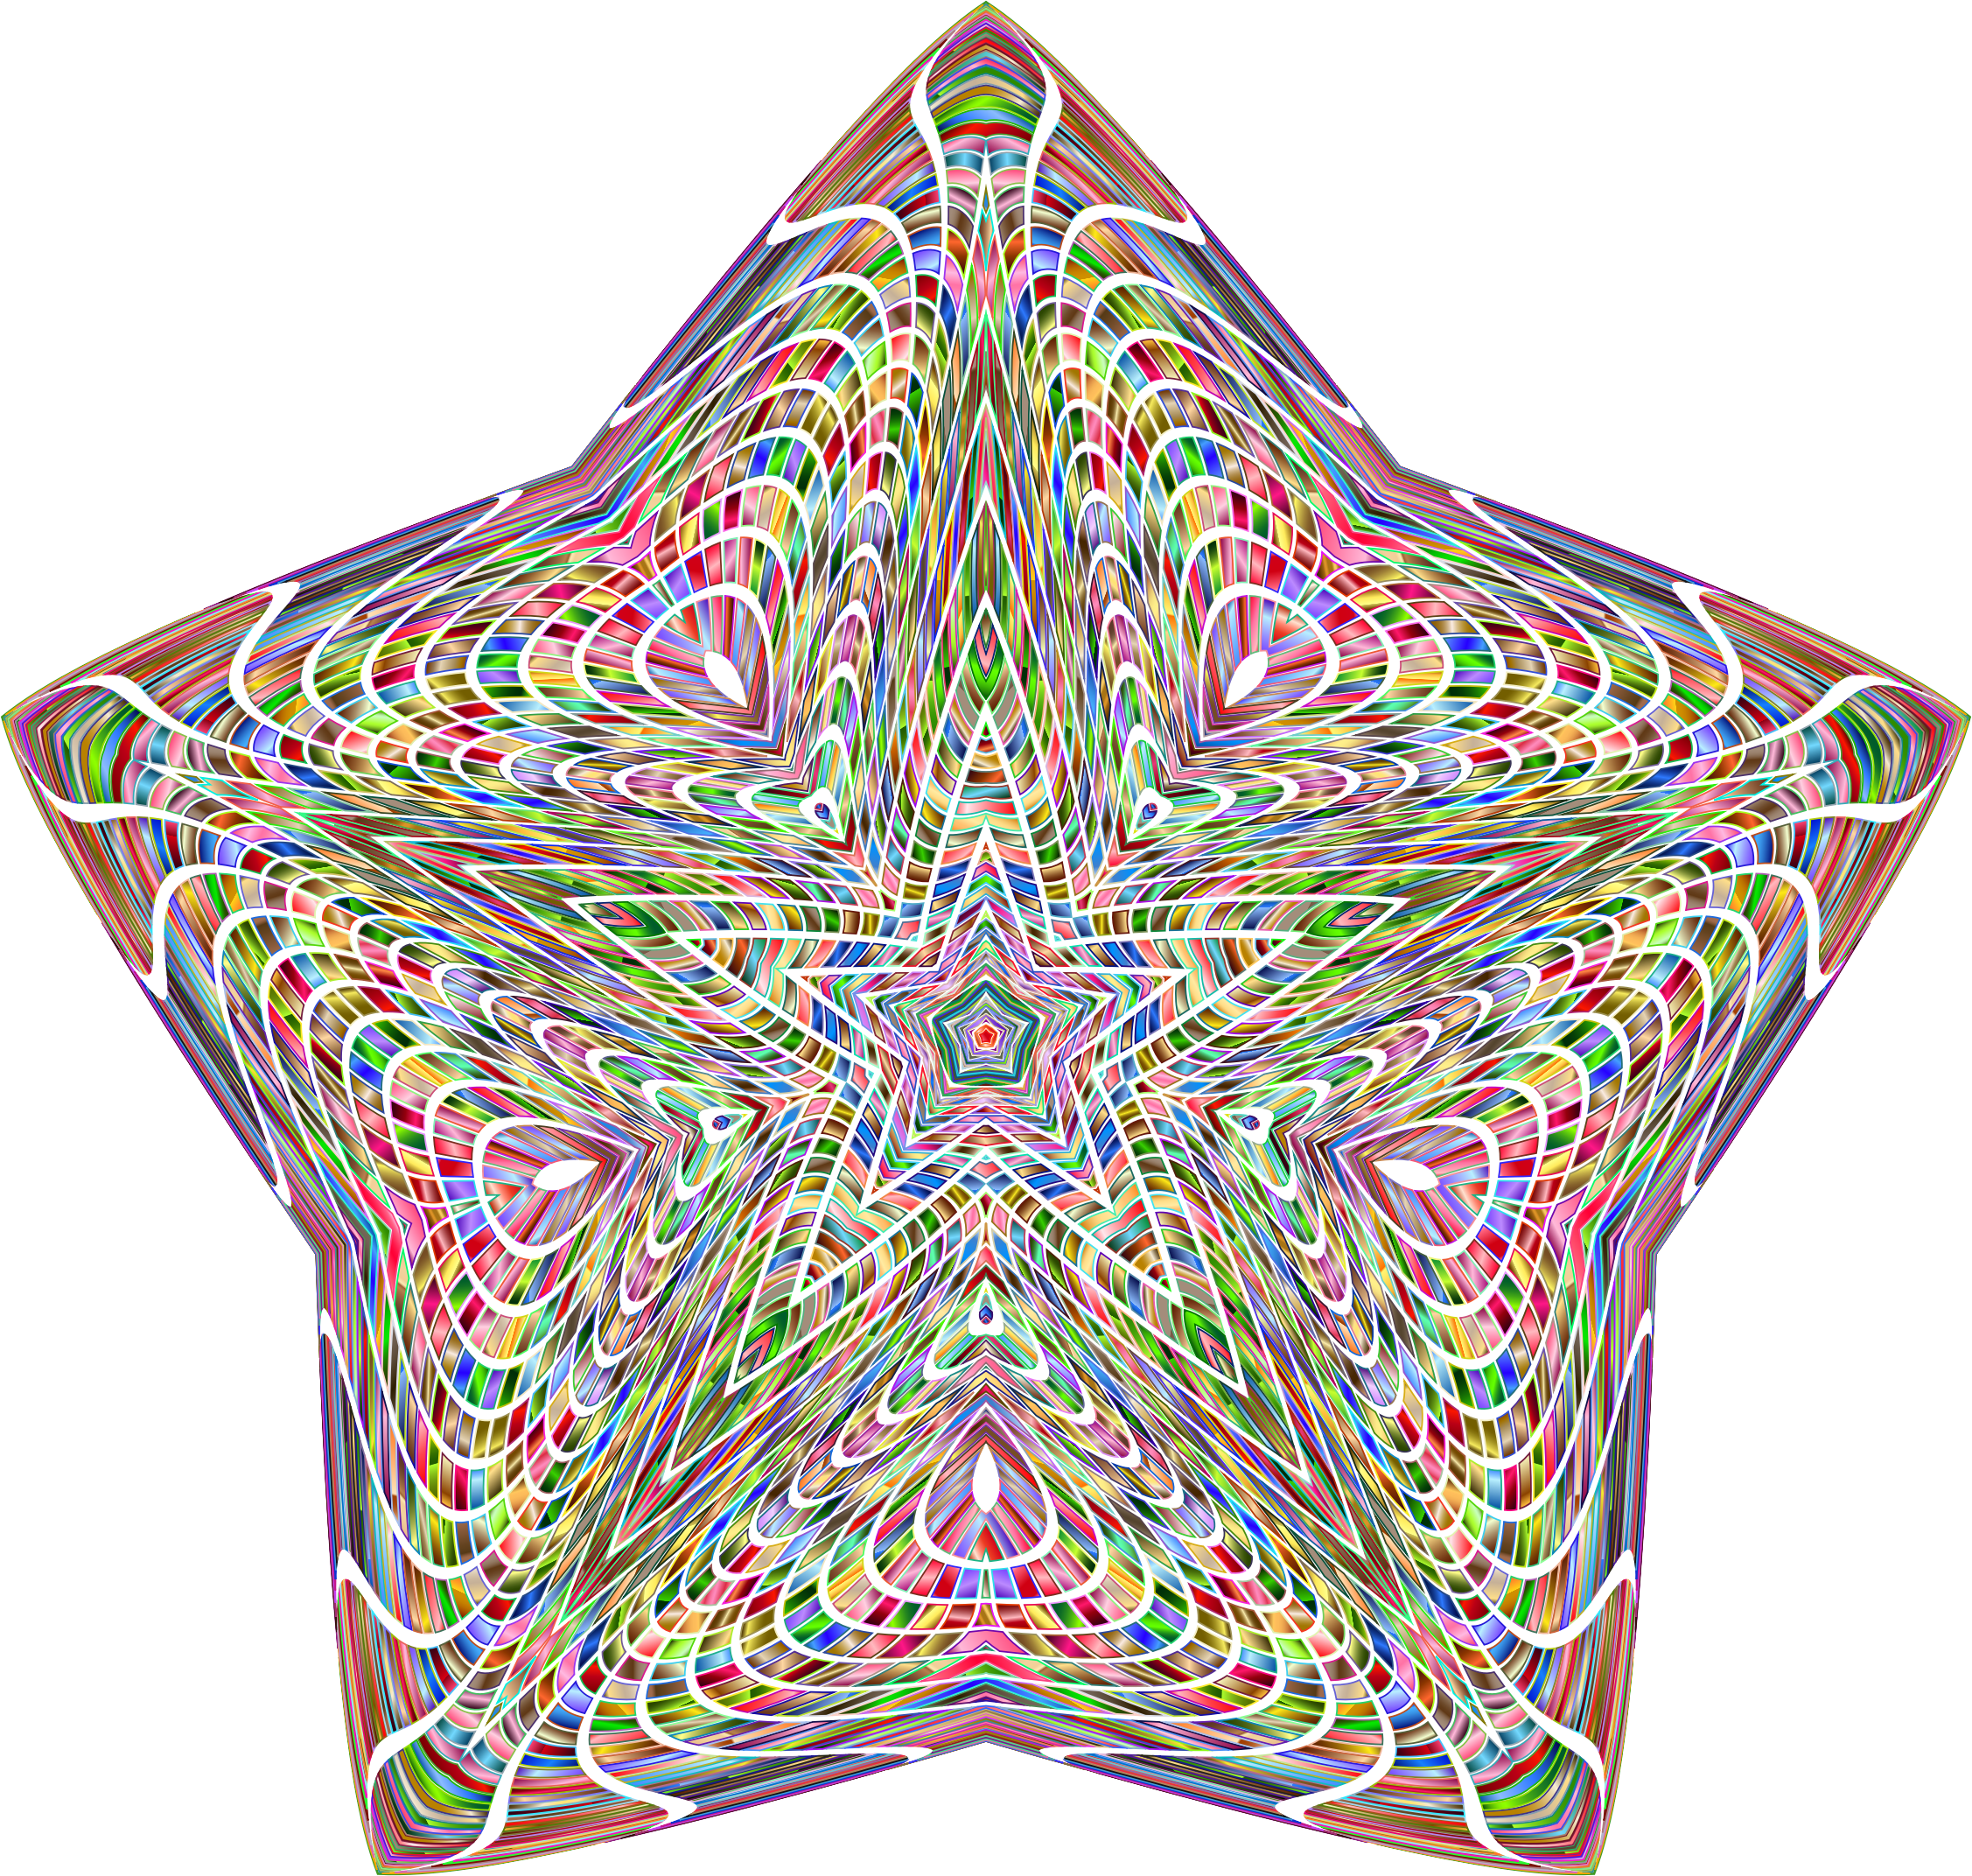 Chromatic Psychedelic Star by GDJ